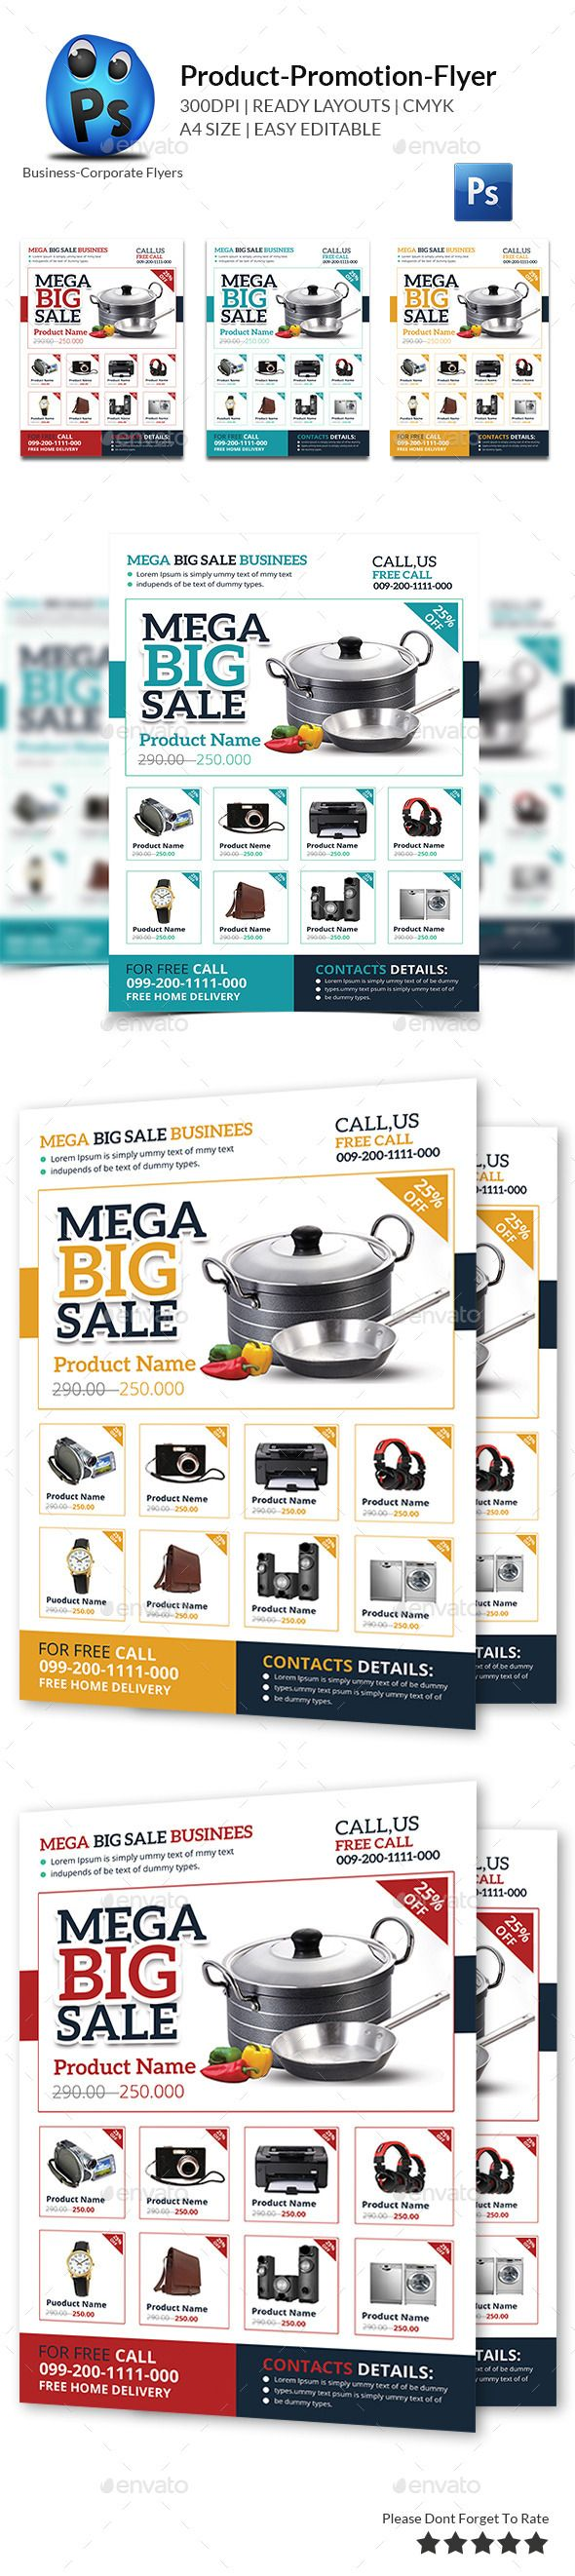 Uncategorized Boots Kitchen Appliances Free Delivery Code best 25 discount appliances ideas on pinterest product promotion flyer print templates